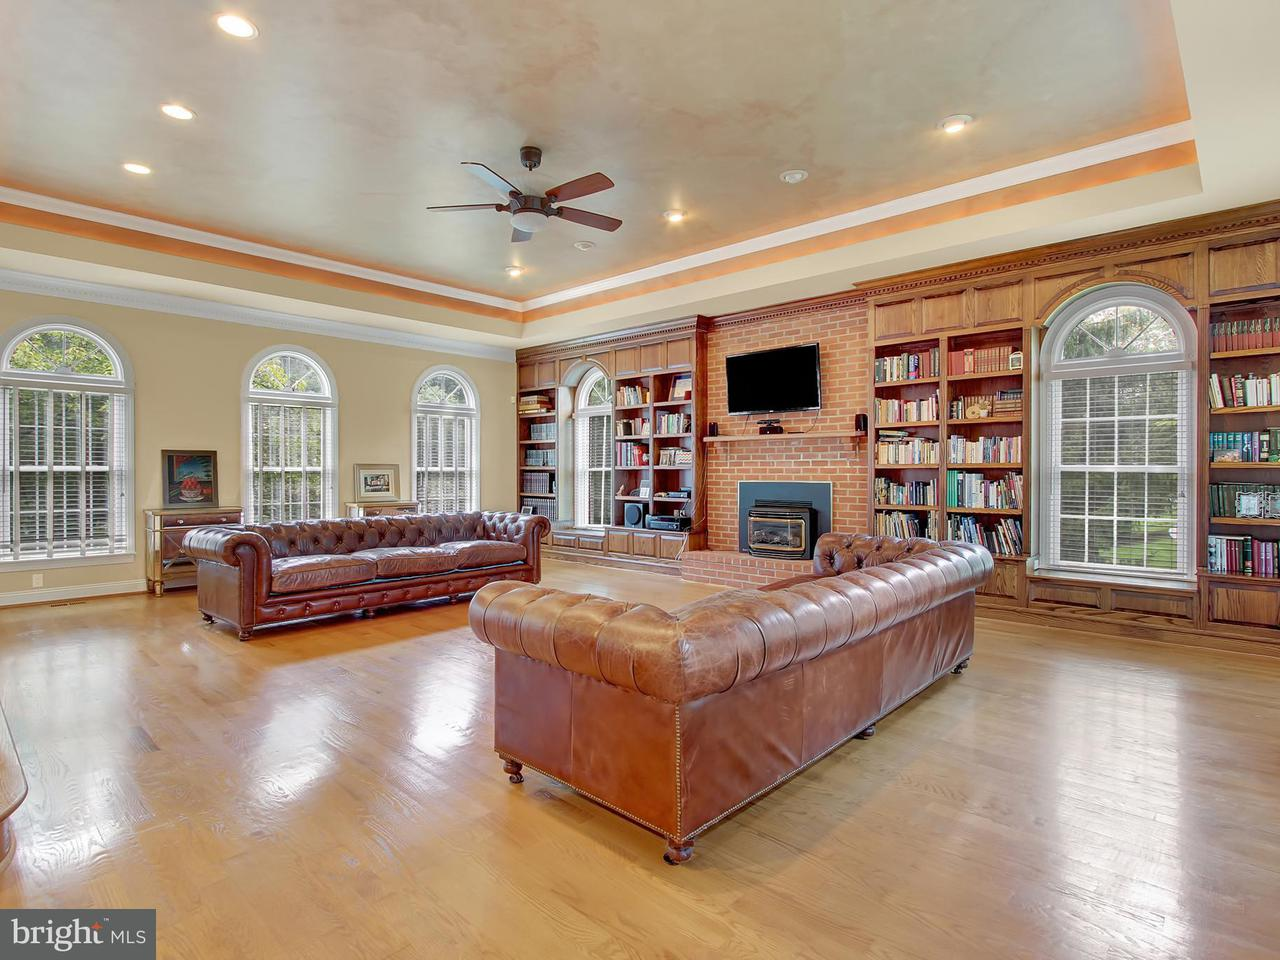 Single Family Home for Sale at 1420 Tayside Way 1420 Tayside Way Bel Air, Maryland 21015 United States